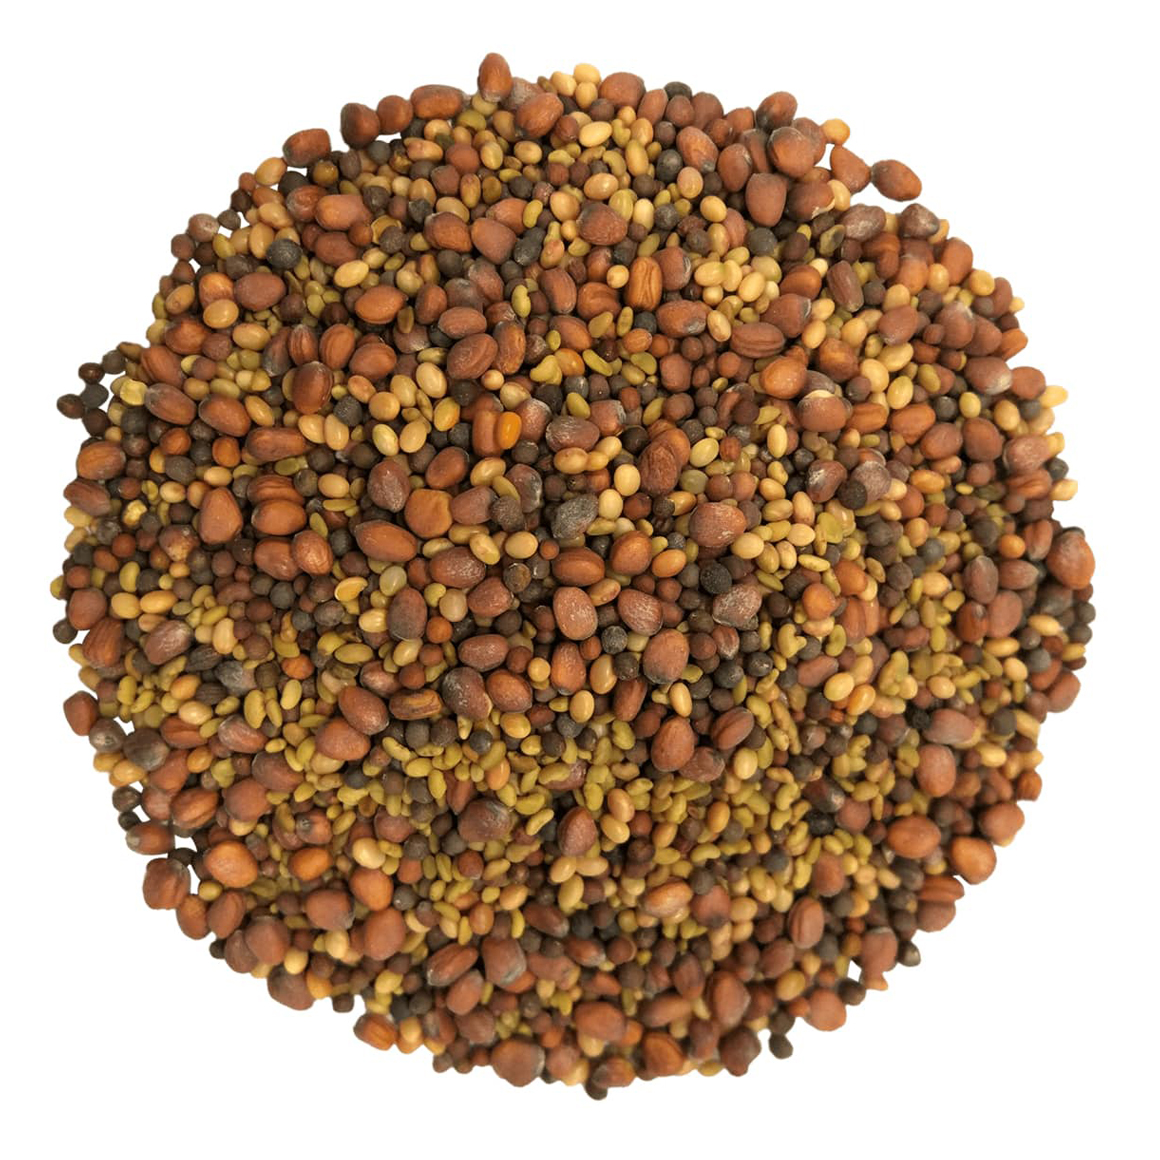 salad-mix-of-sprouting-seeds-main-min